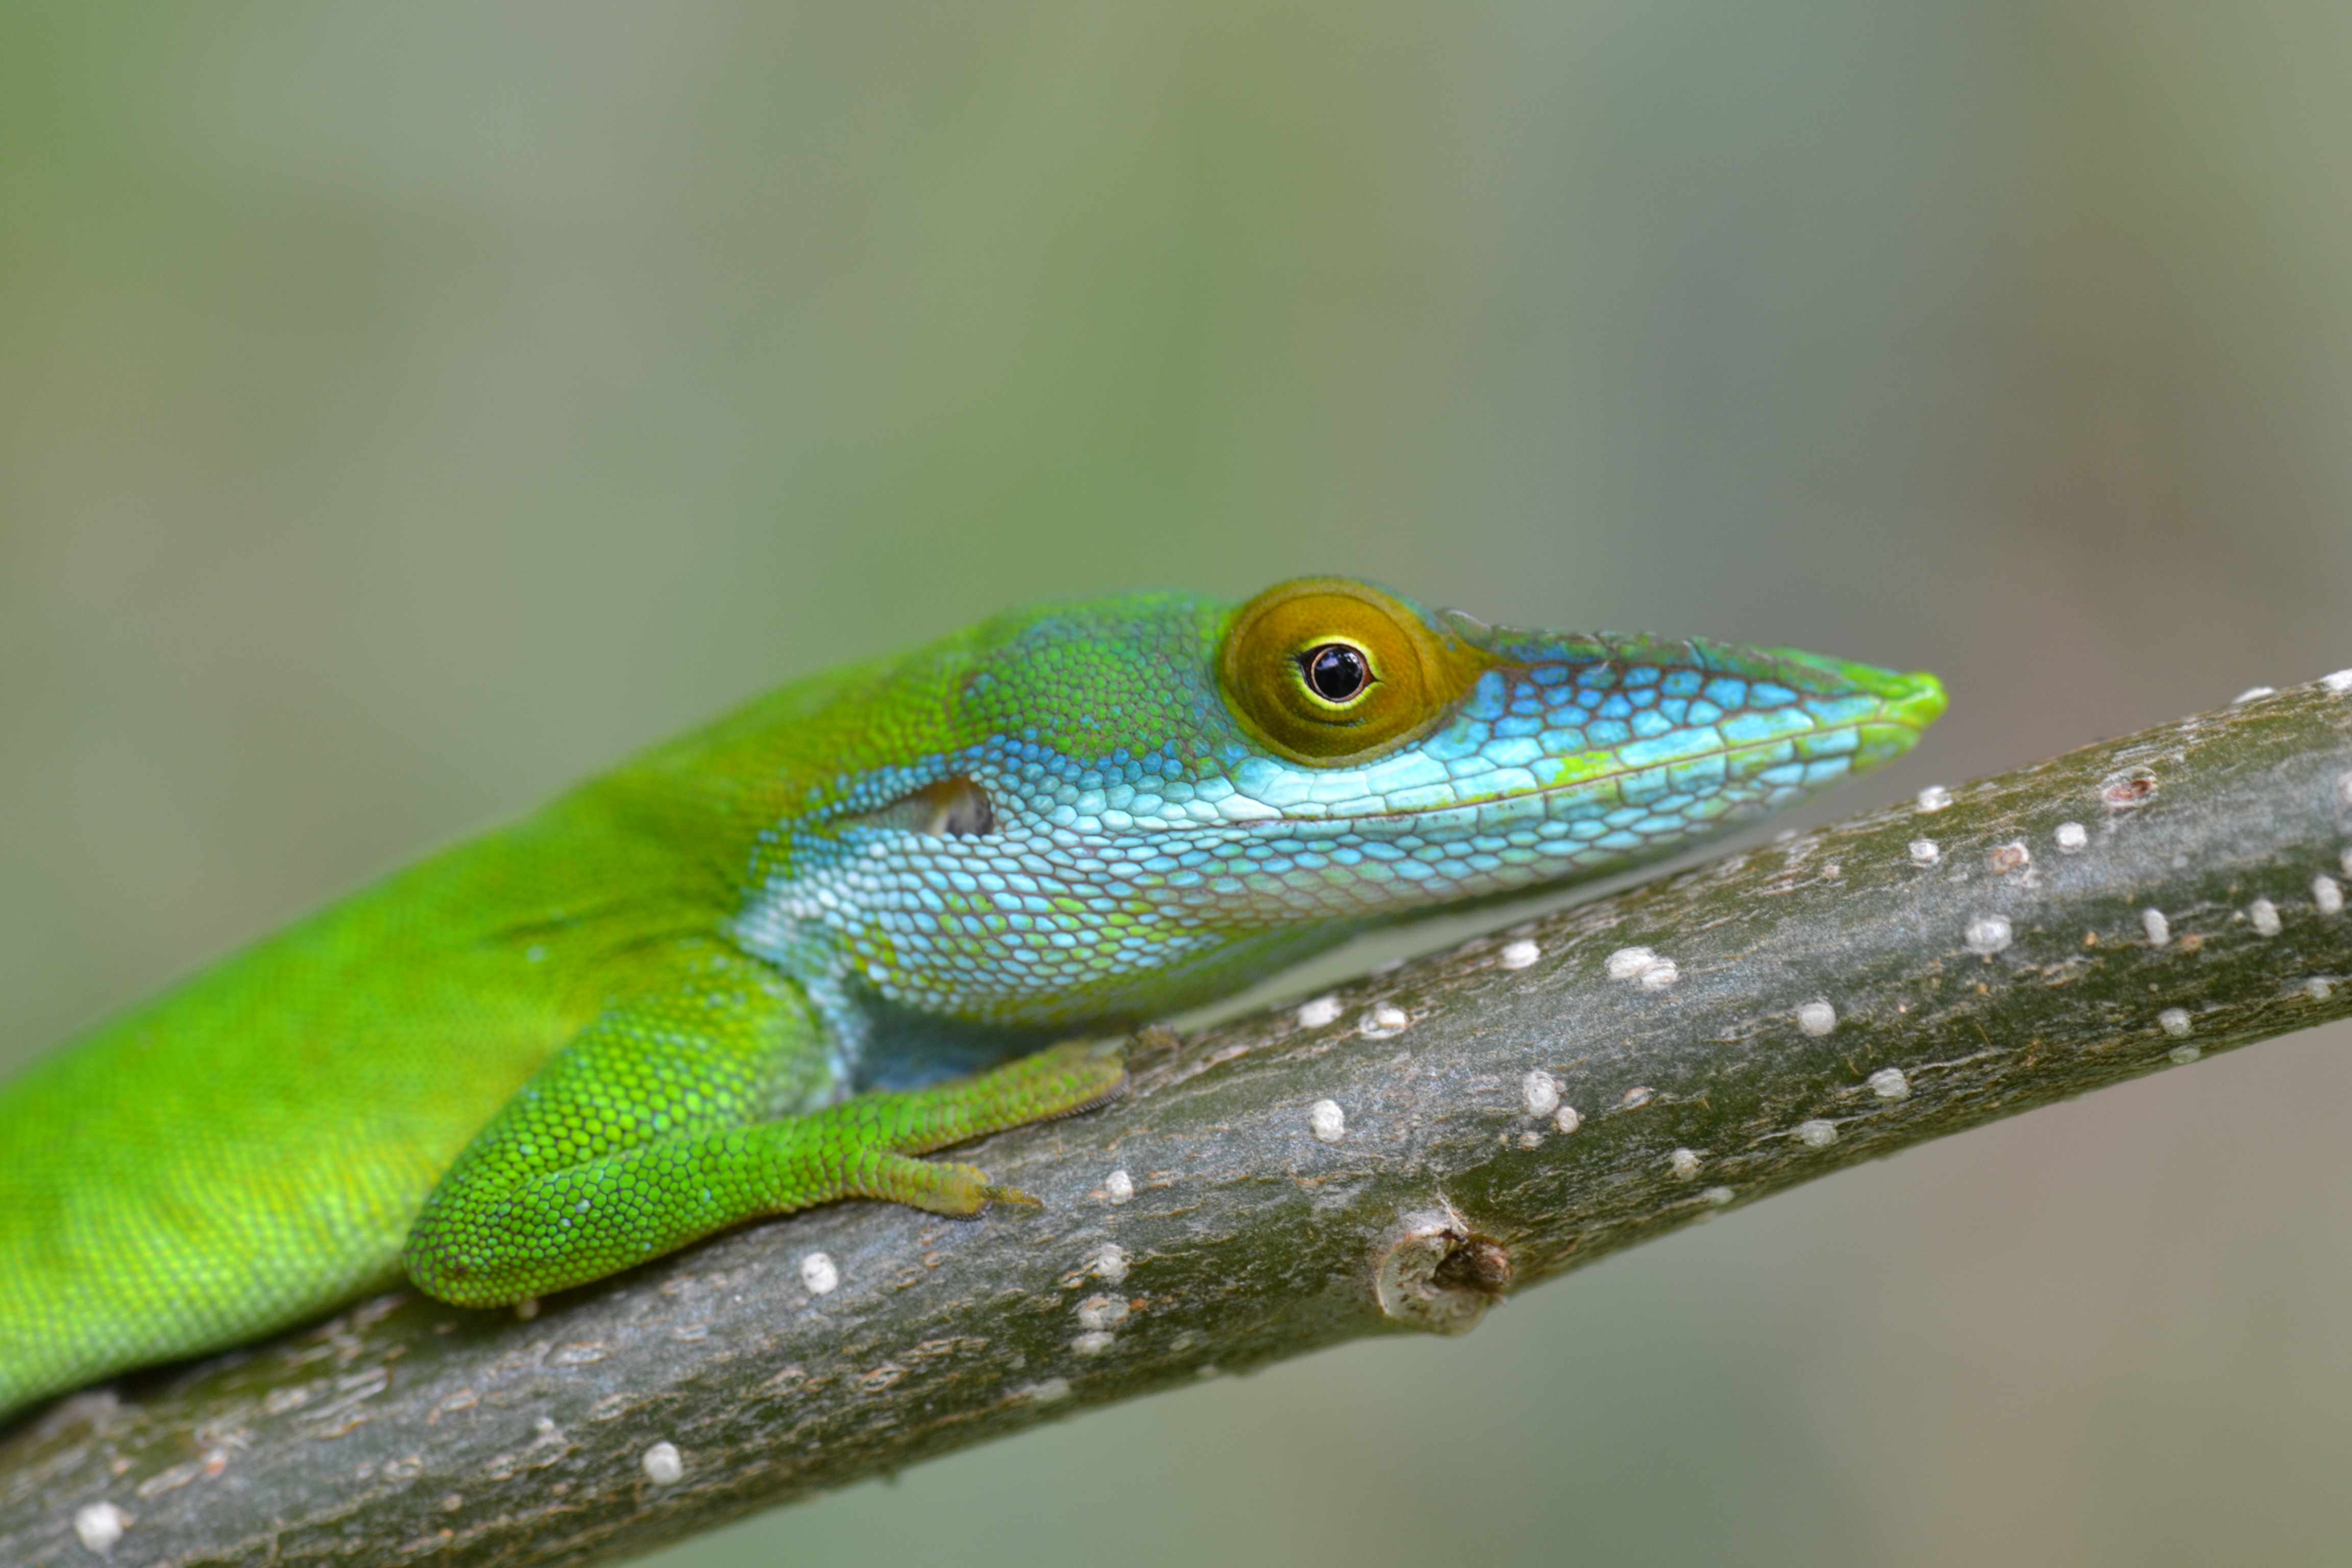 Green And Blue Lizards